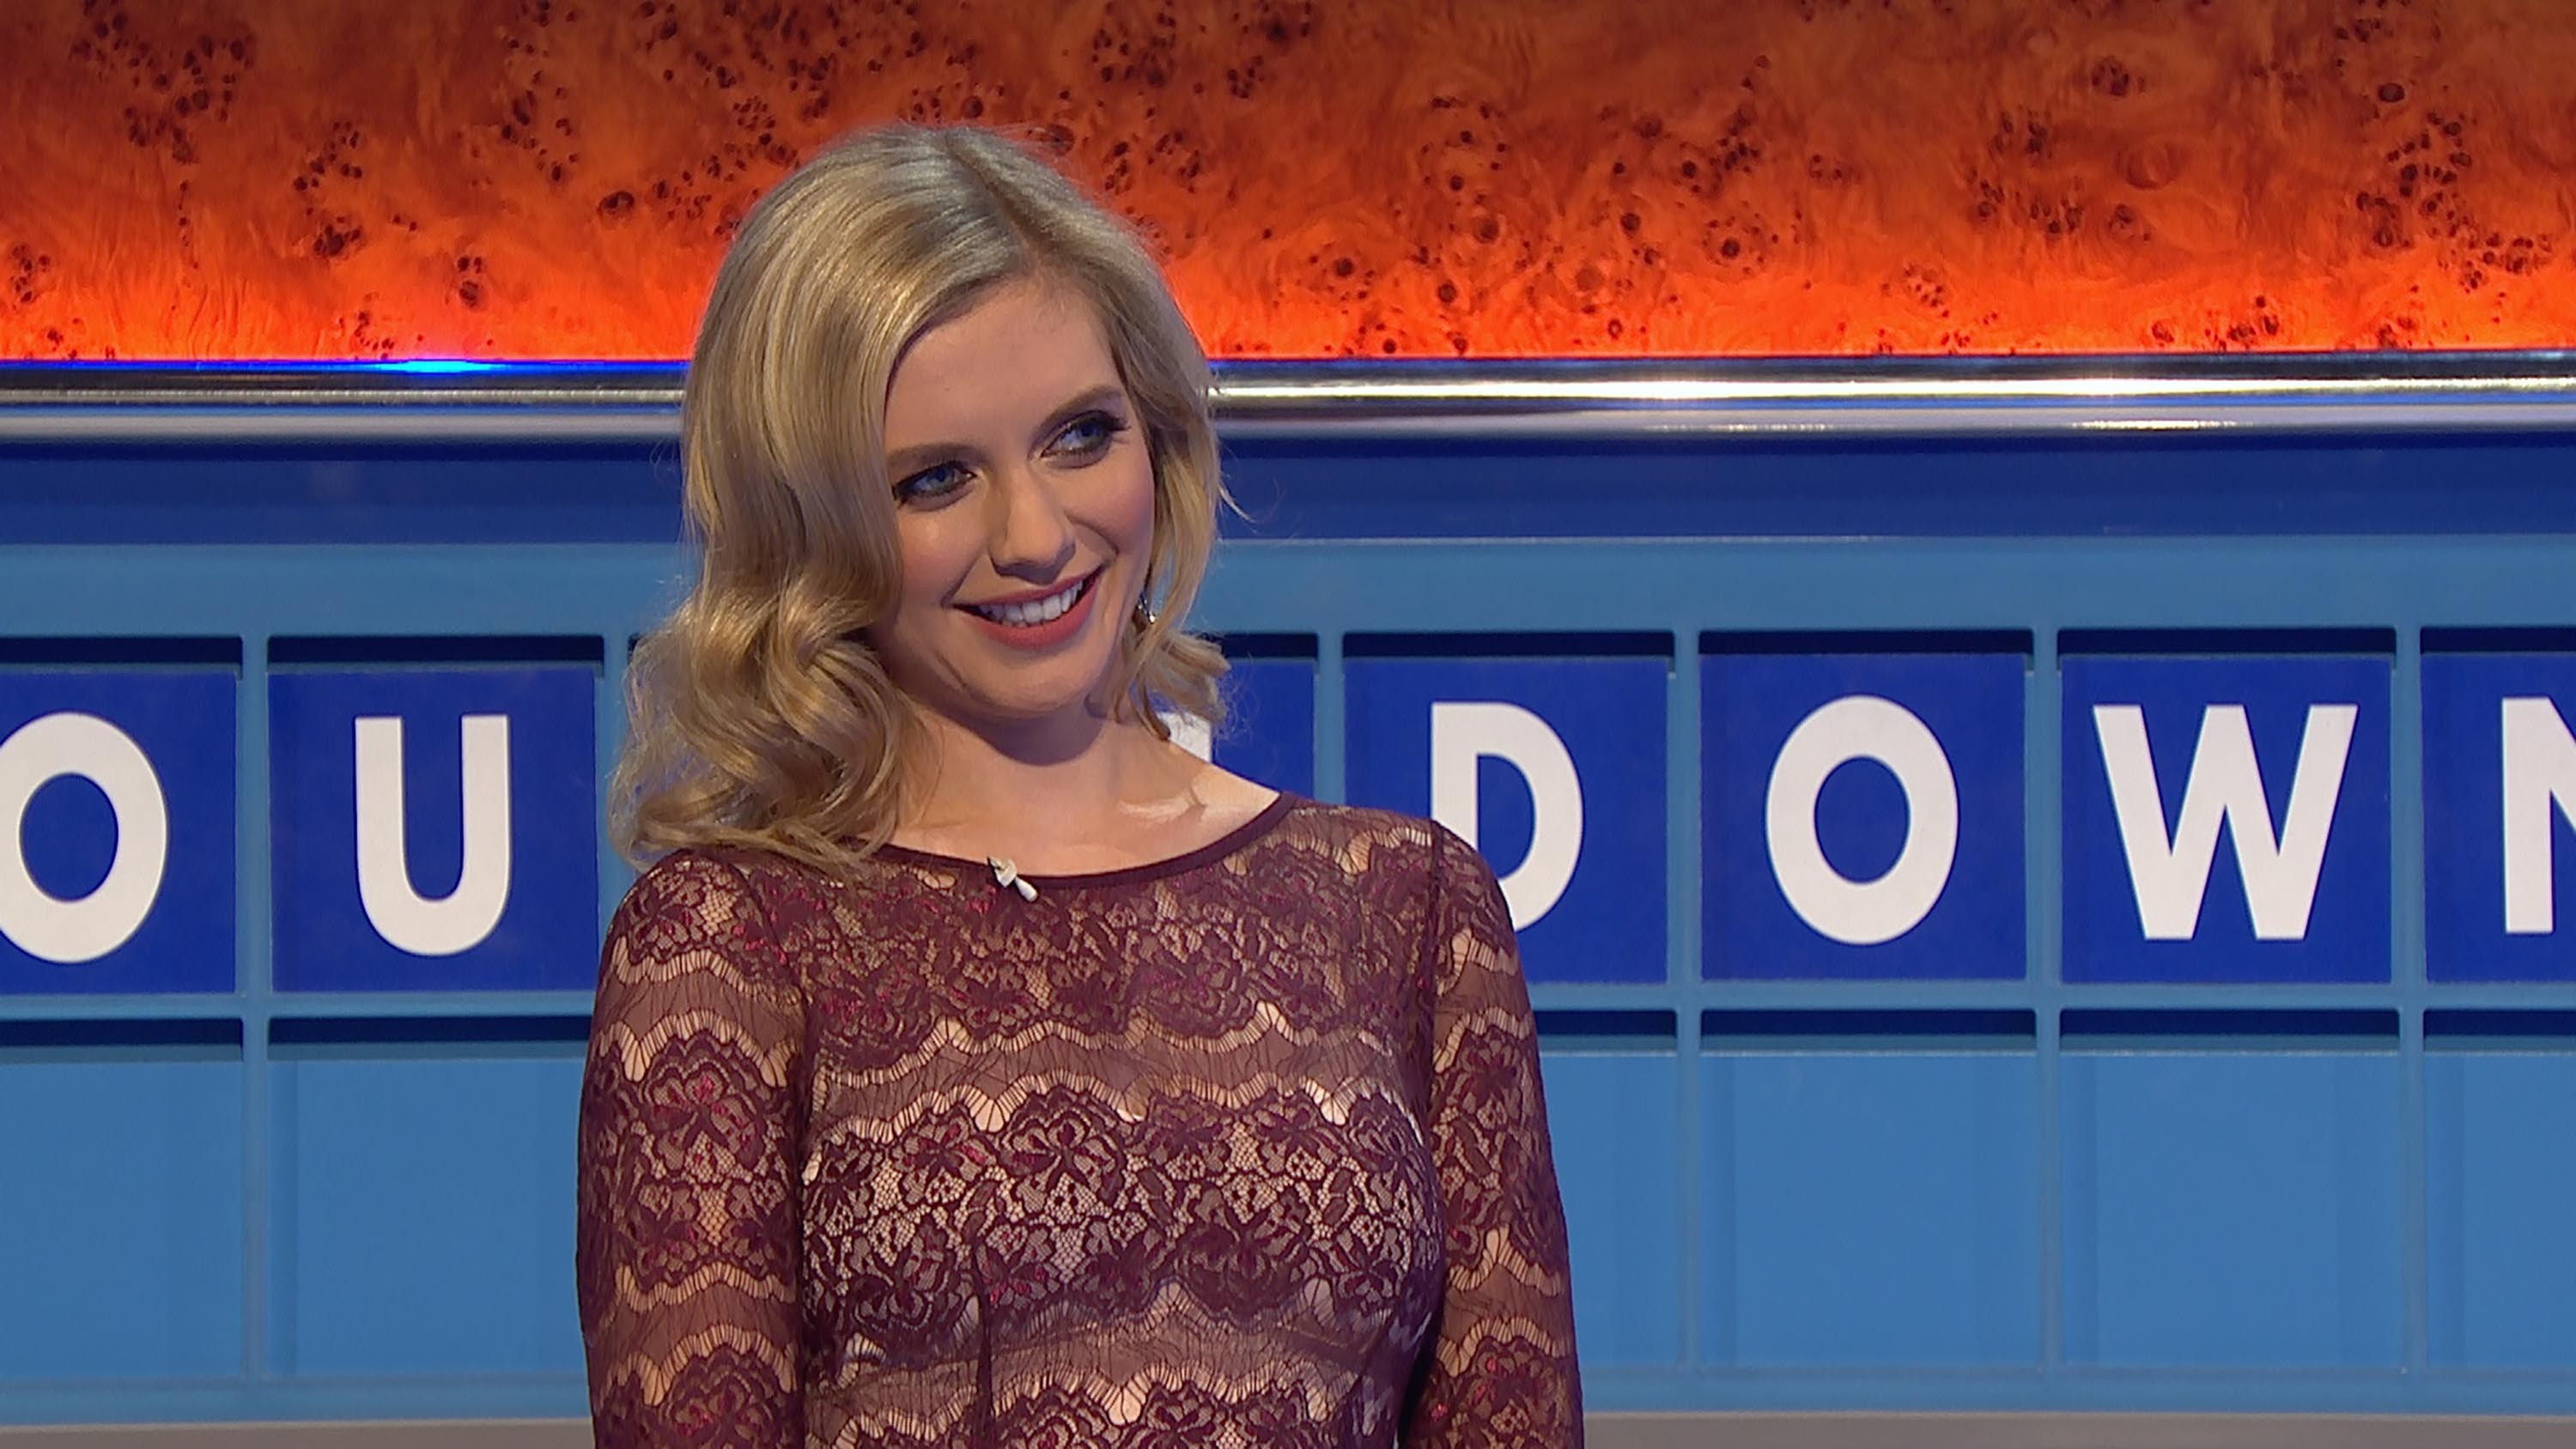 8 Out of 10 Cats Does Countdown: - Episode 3 (RACHEL RILEY) C4, TL